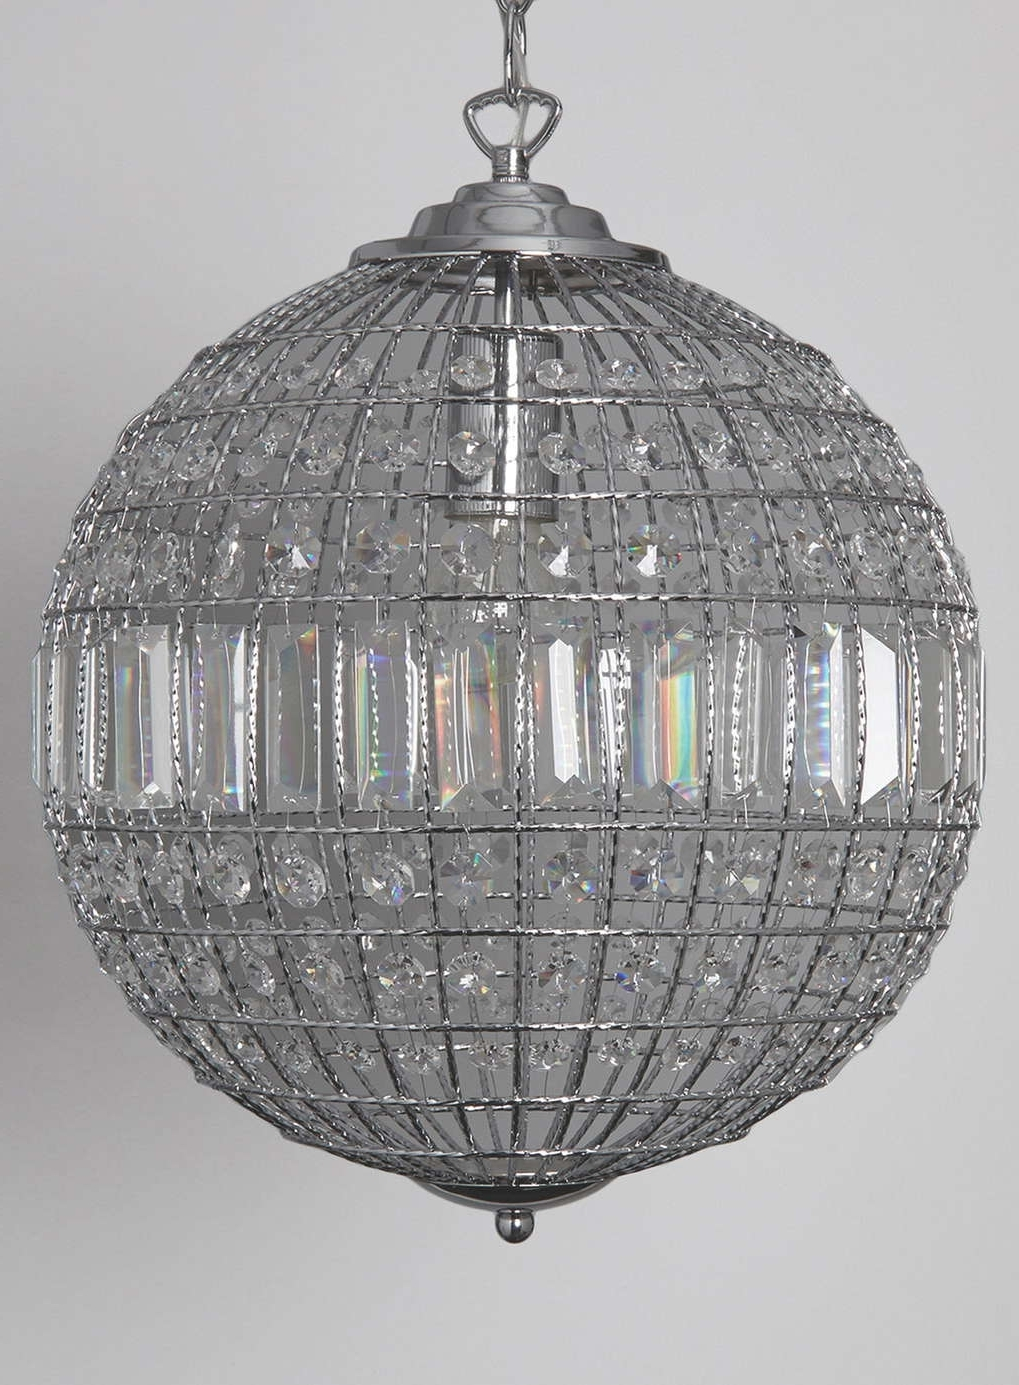 Most Popular Globe Crystal Chandelier For Light : Lovely Crystal Hanging Chandelier Residence Decorating (View 9 of 15)